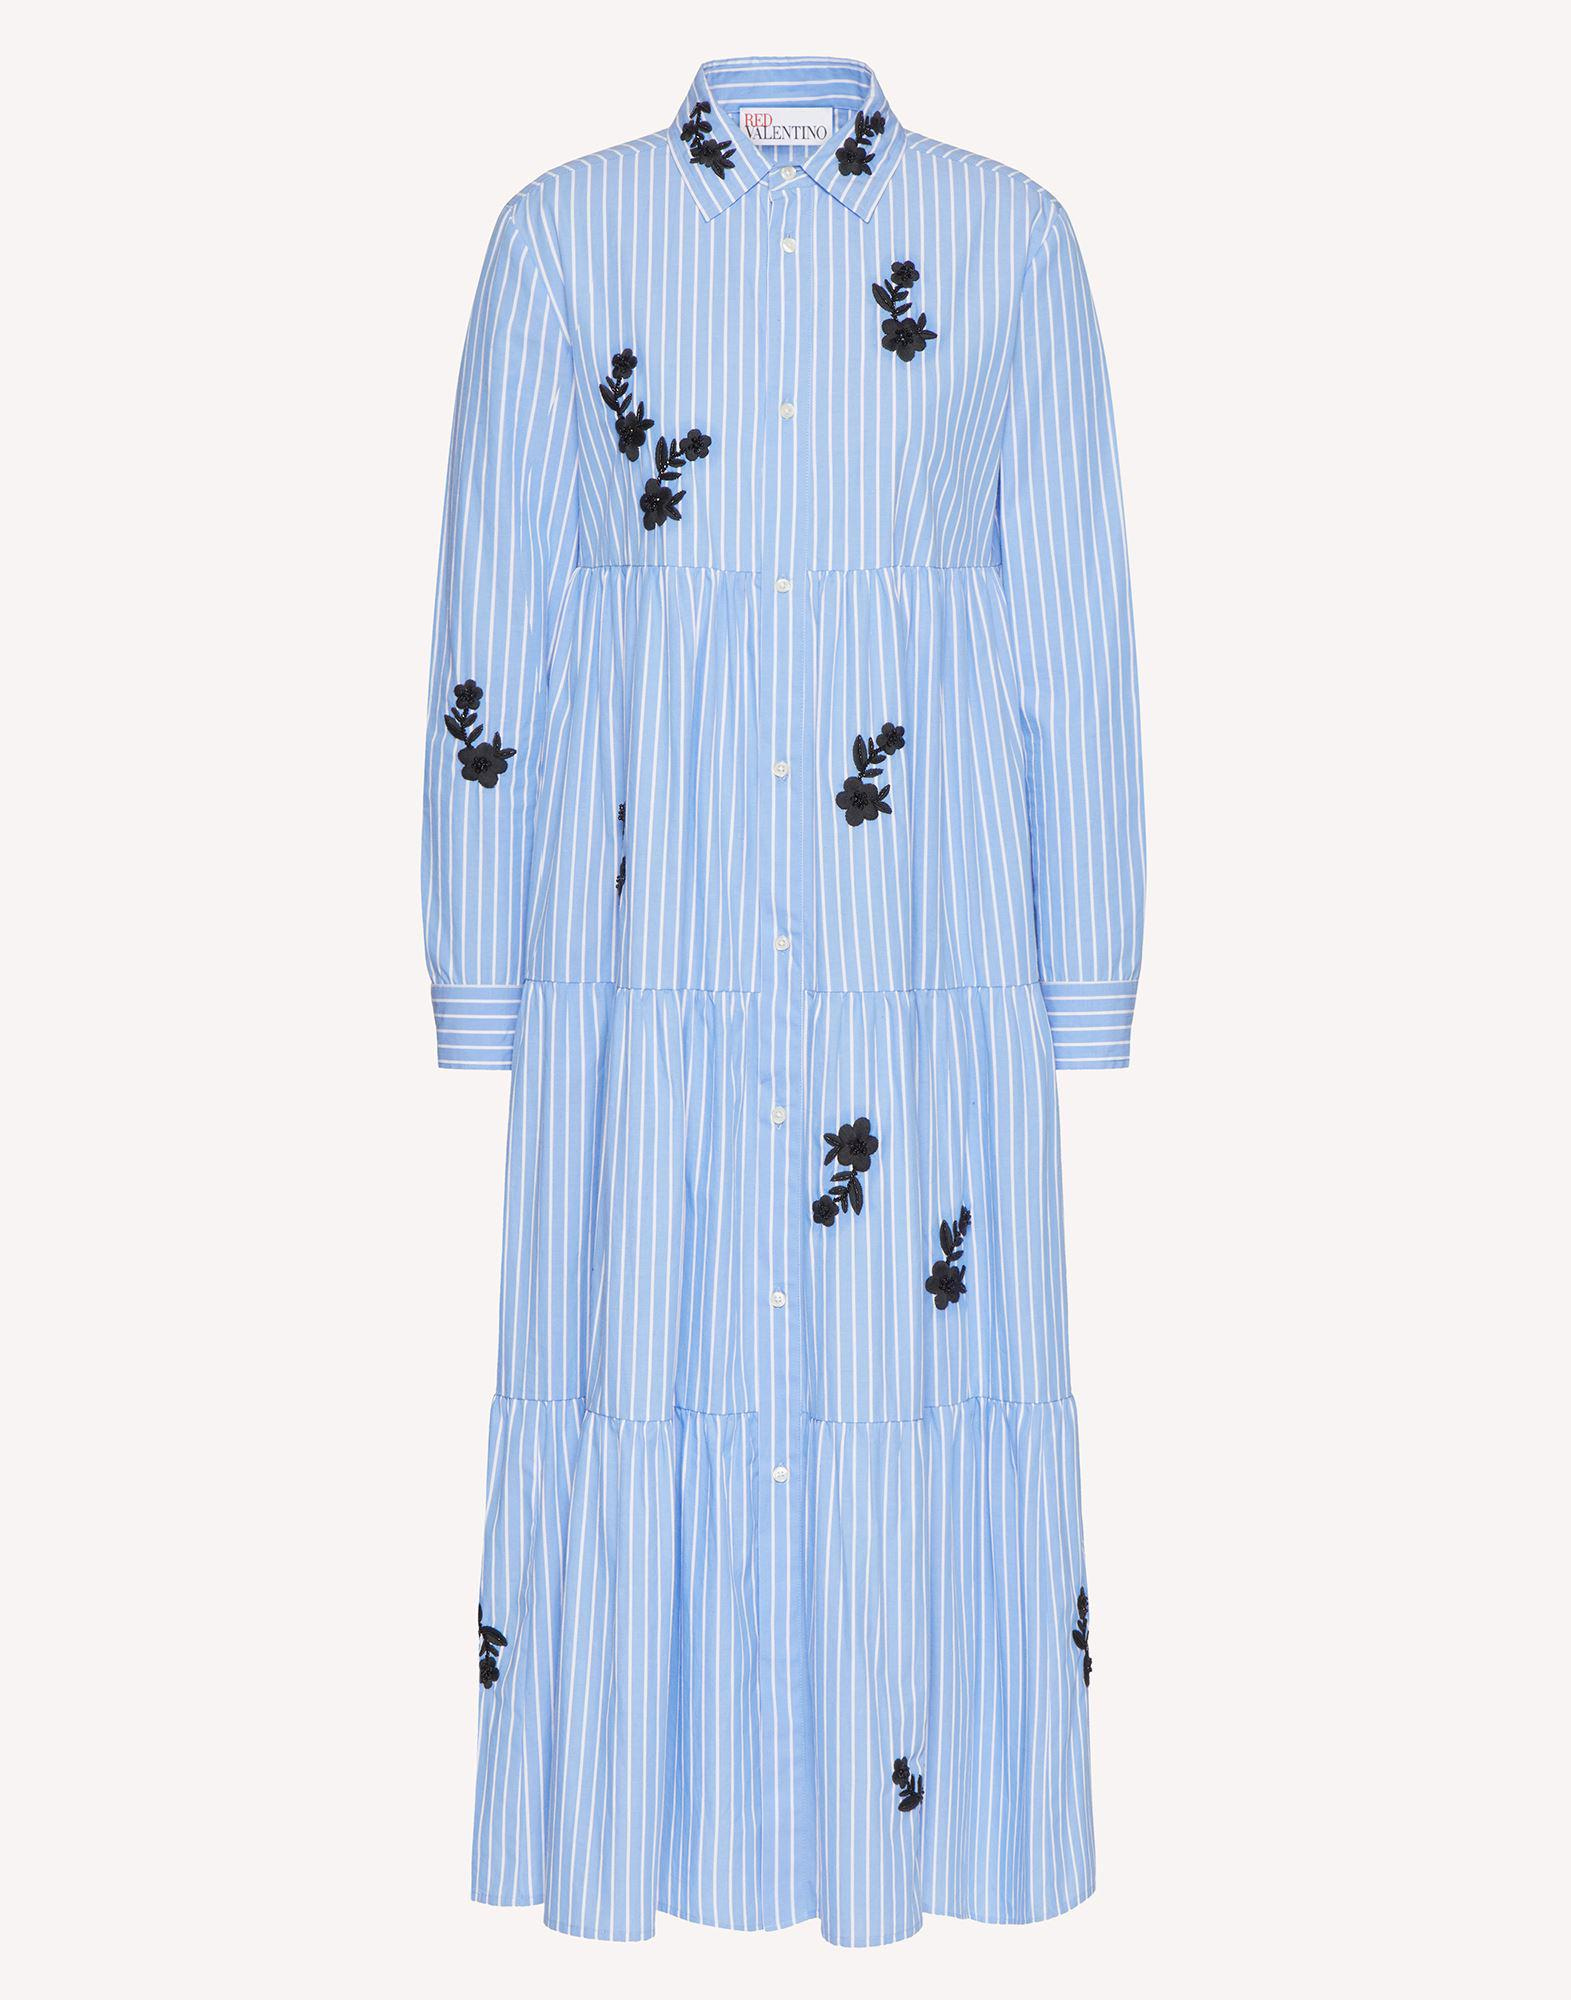 STRIPED COTTON DRESS WITH FLORAL EMBROIDERY 4